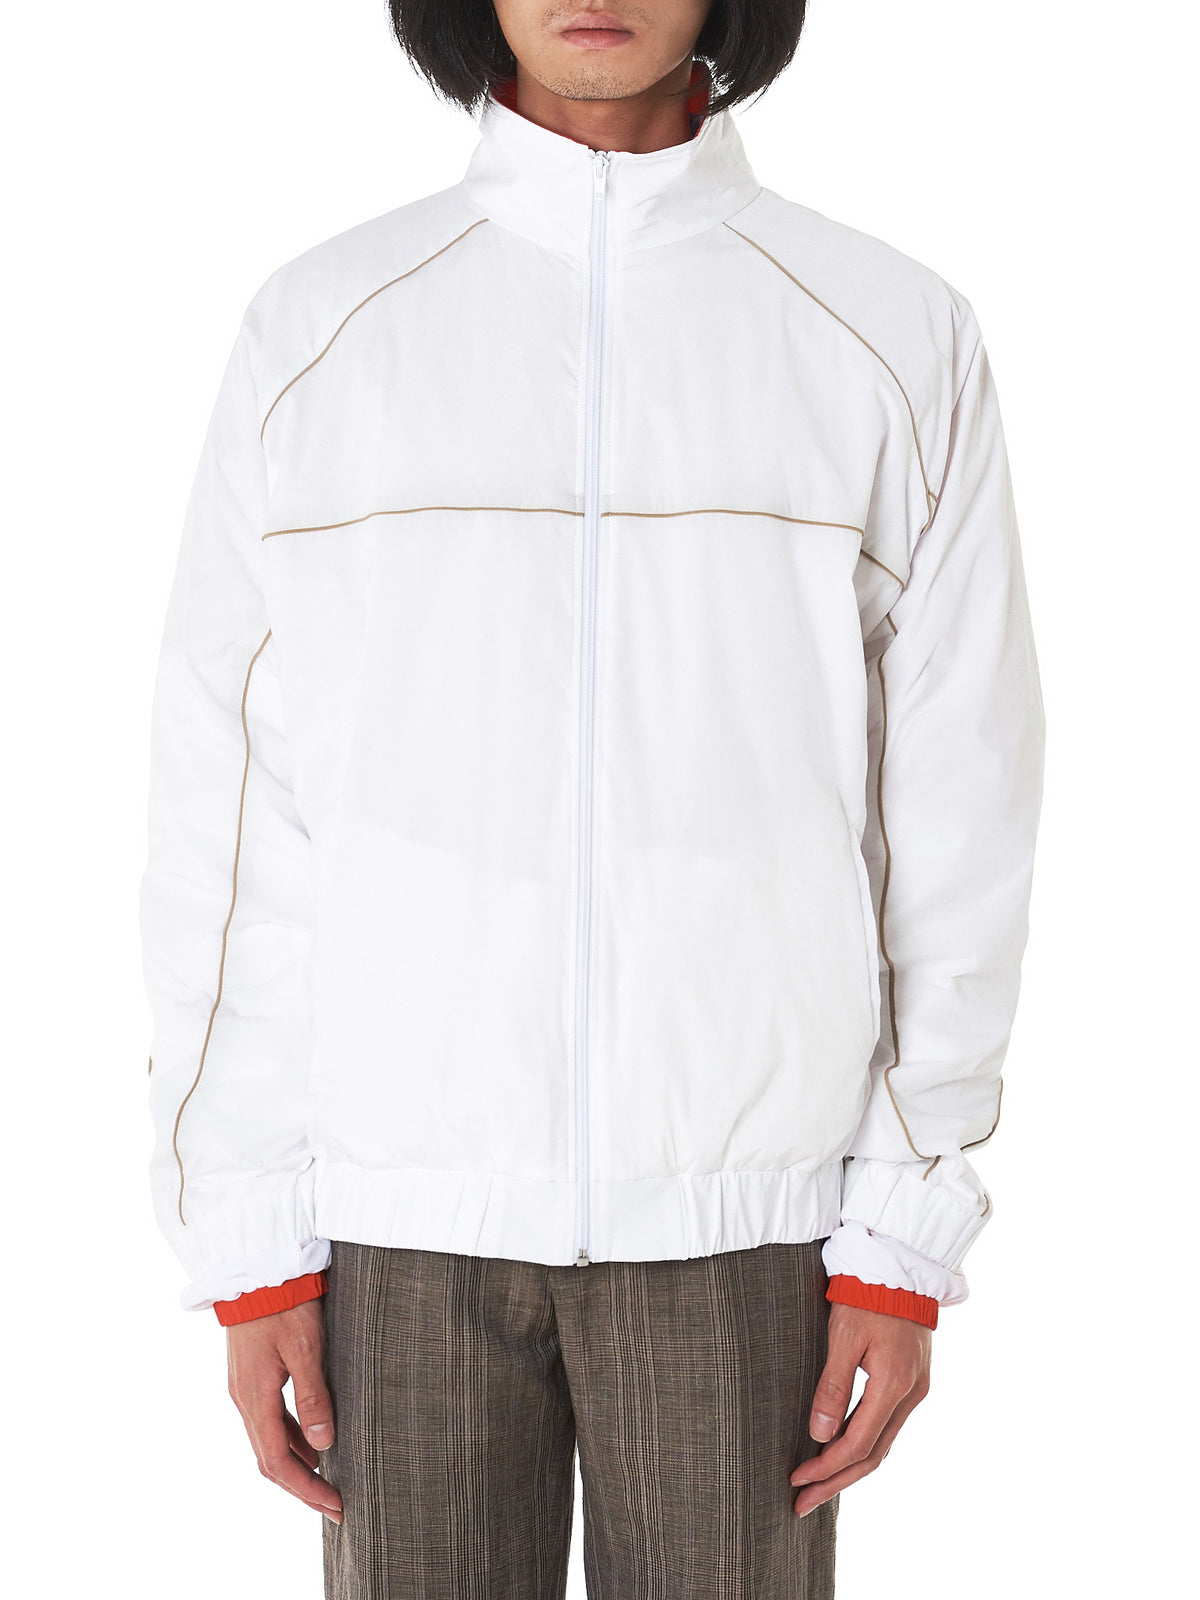 Piped Coach's Jacket (PARKA1-S14-F08-S14-WHITE)